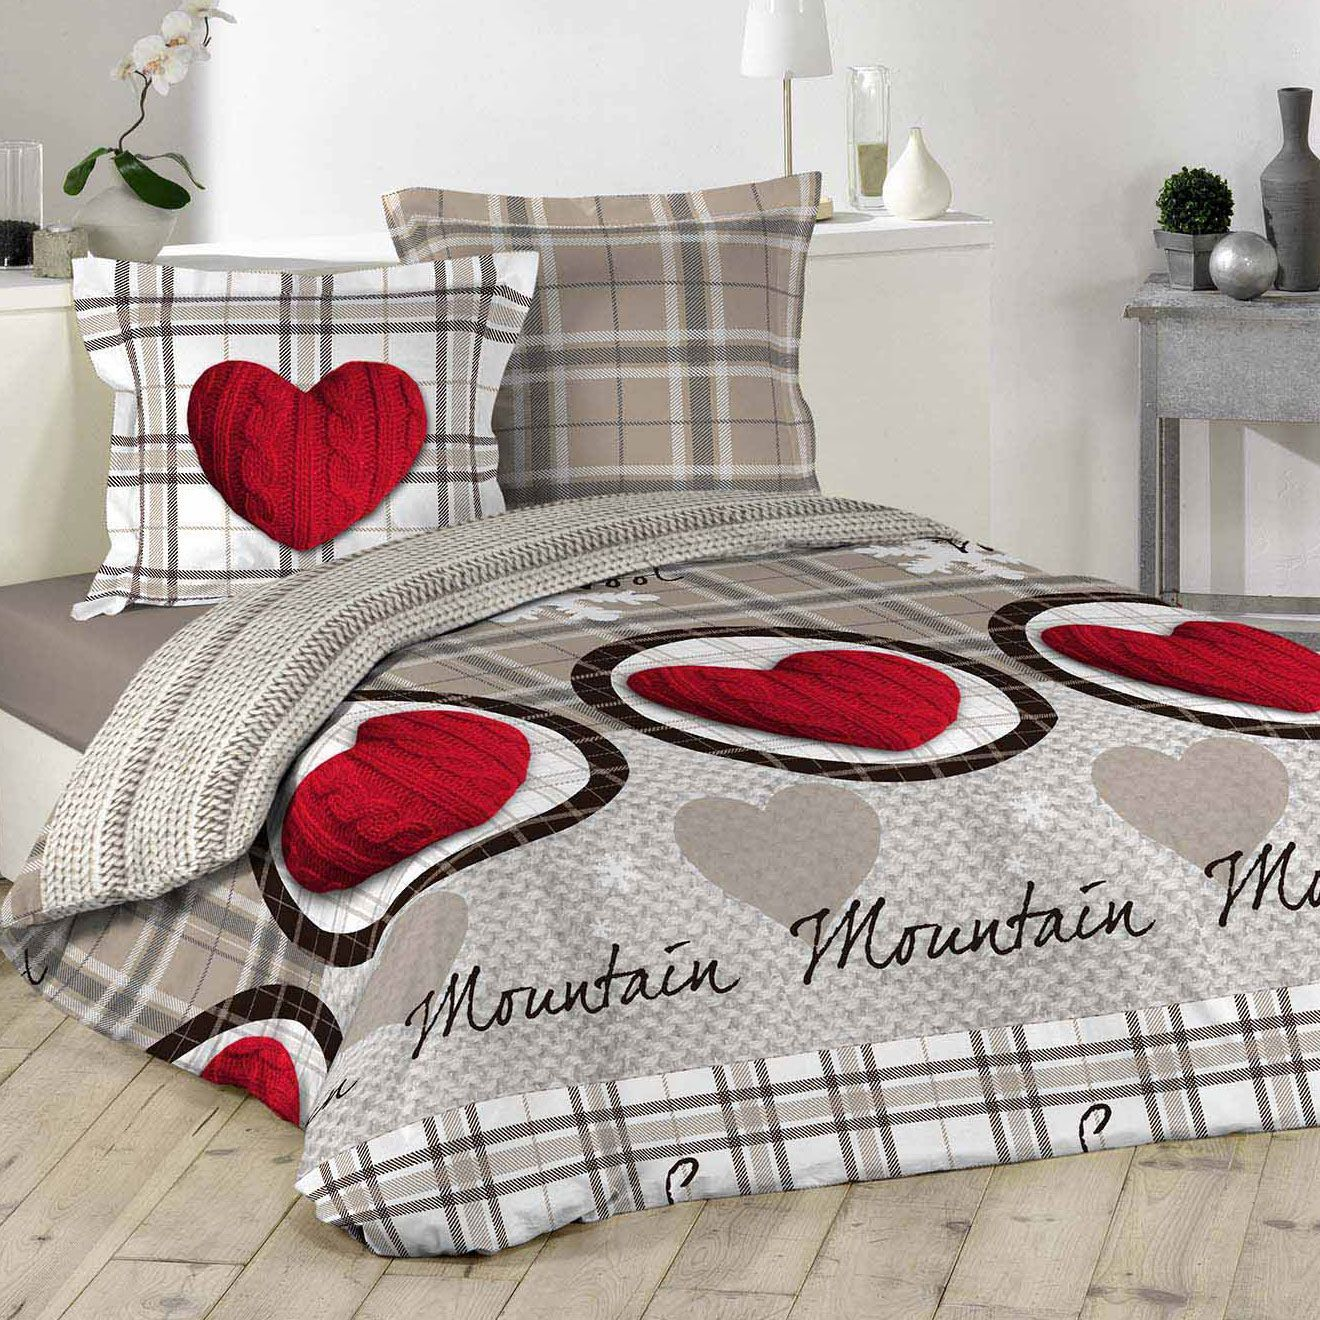 housse de couette et deux taies montagne 100 coton 260 cm rouge housse de couette eminza. Black Bedroom Furniture Sets. Home Design Ideas